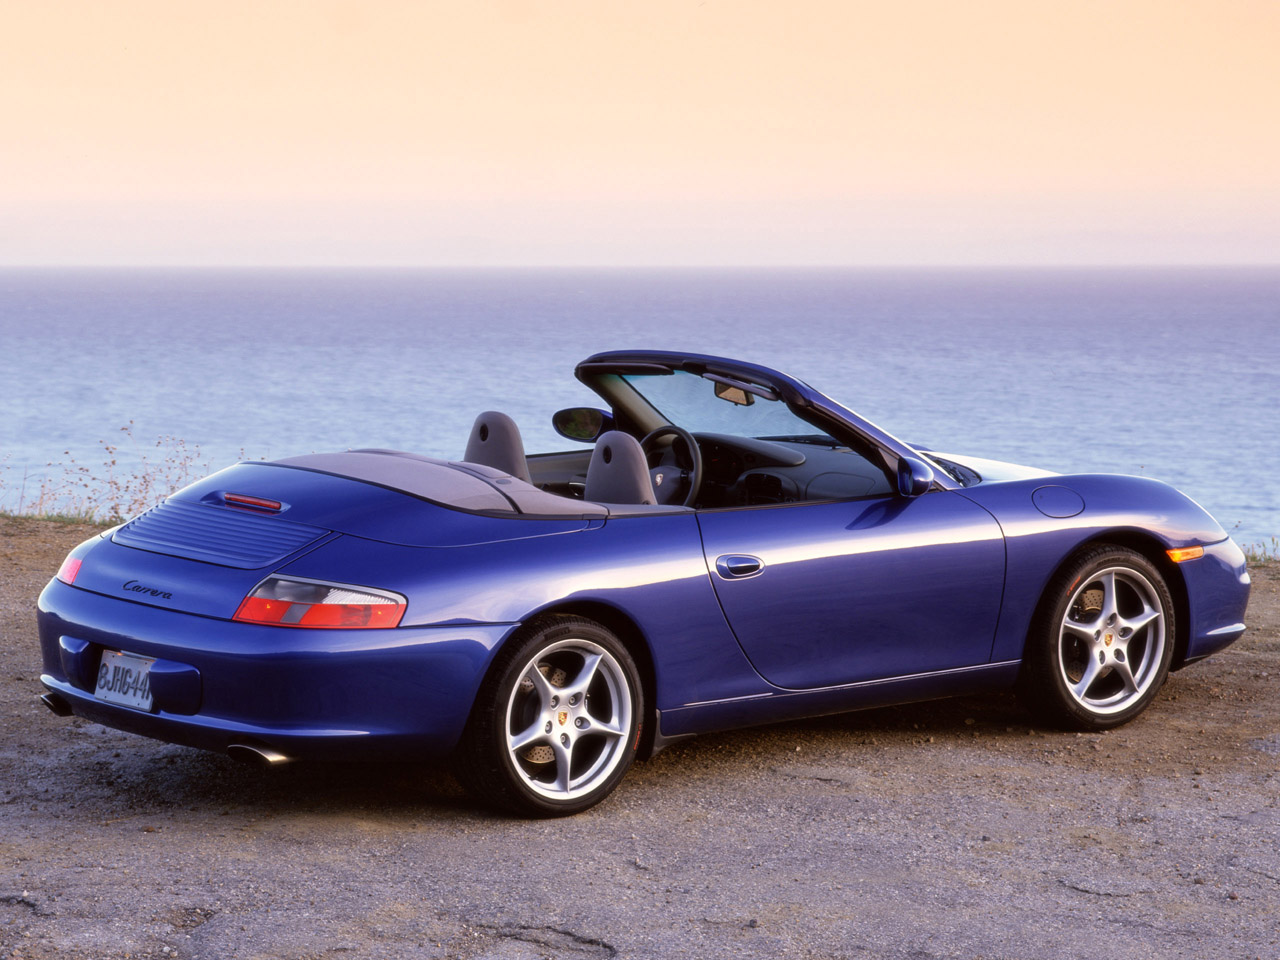 Porsche 911 Carrera 4 Cabriolet 1280x960 Images - Car ...